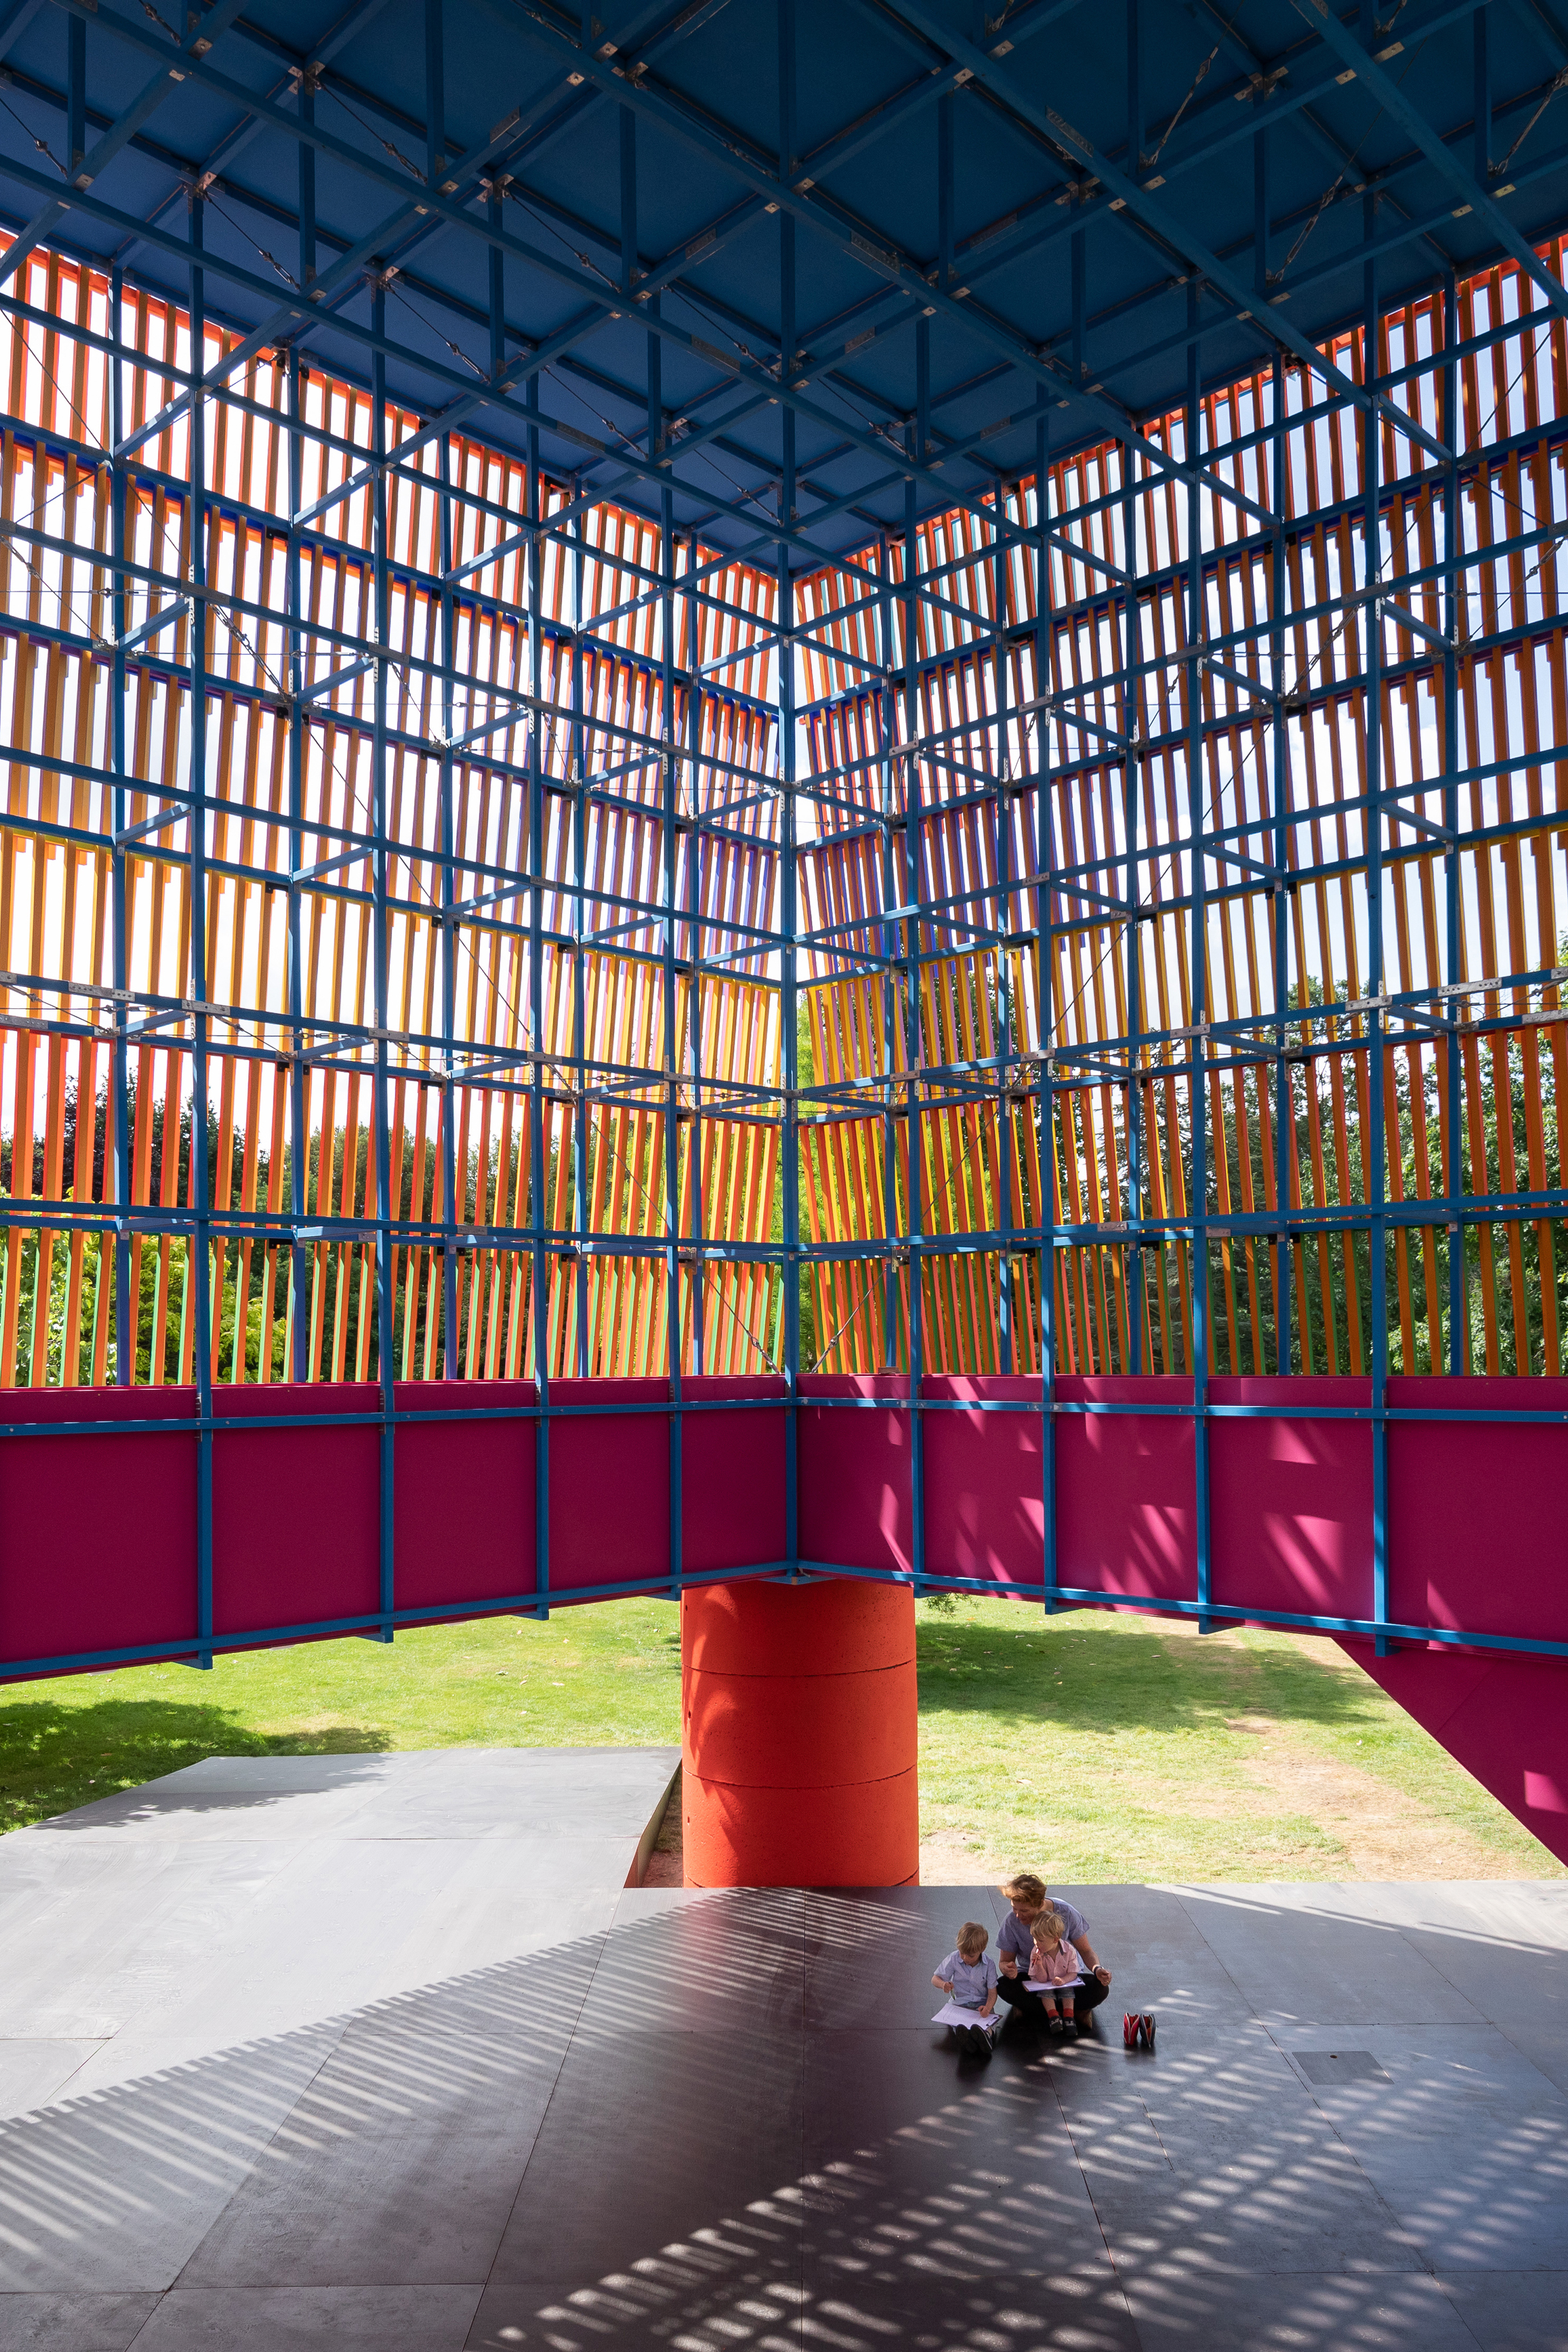 <p>A steel walkway with a shocking pink ply balustrade supported the lattice structure. Photography © Adam Scott</p>